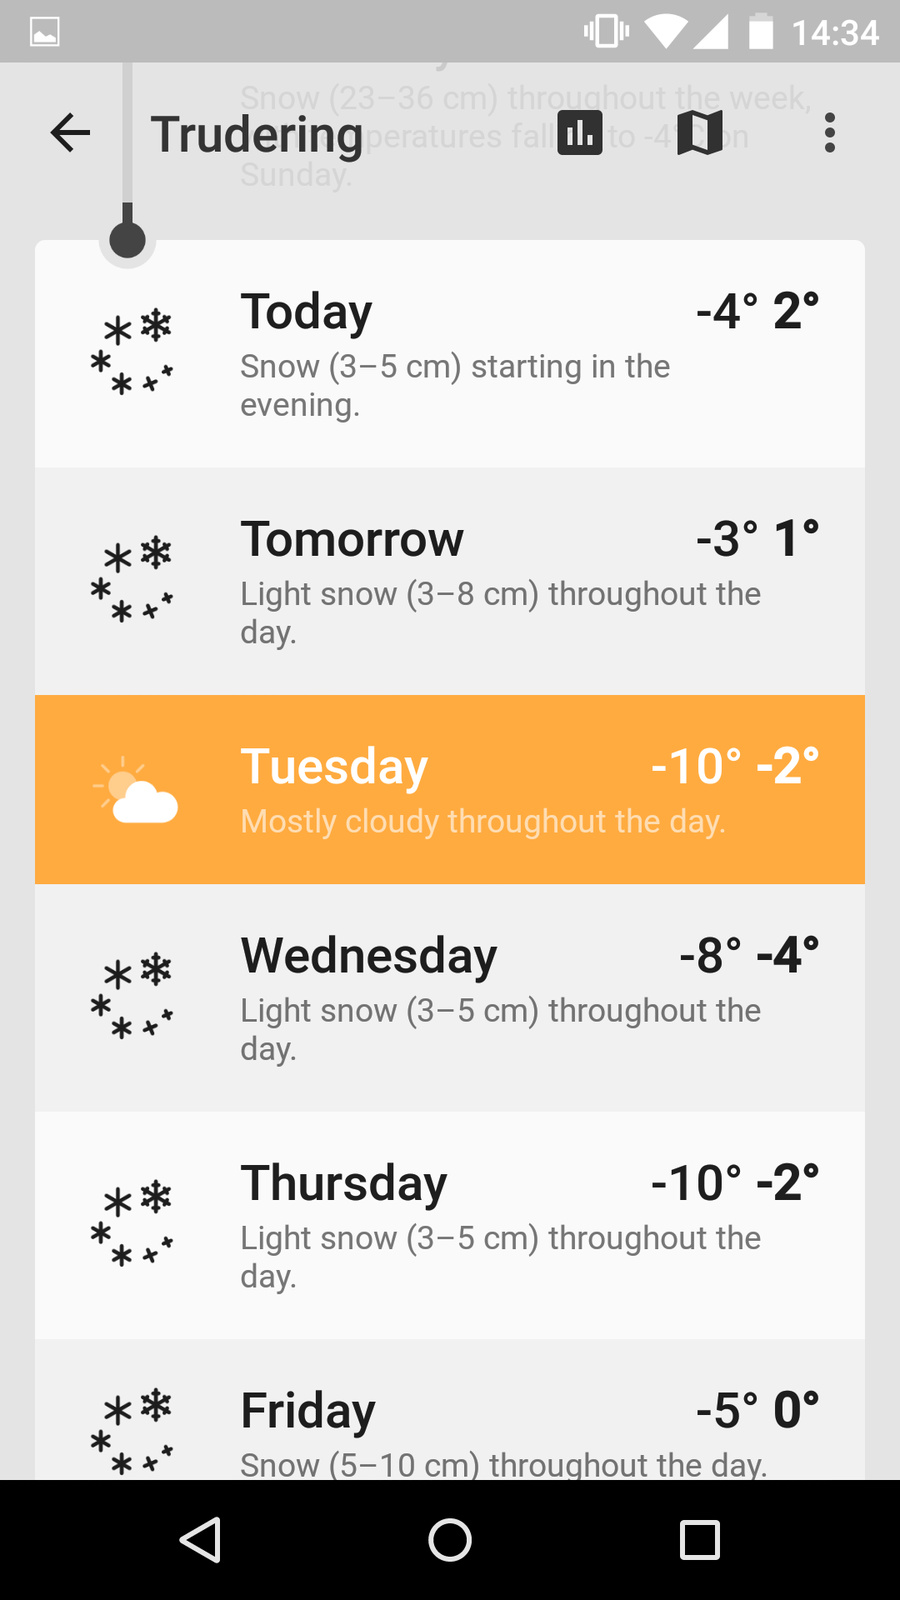 Weather forecast, timeline view, scrolled down